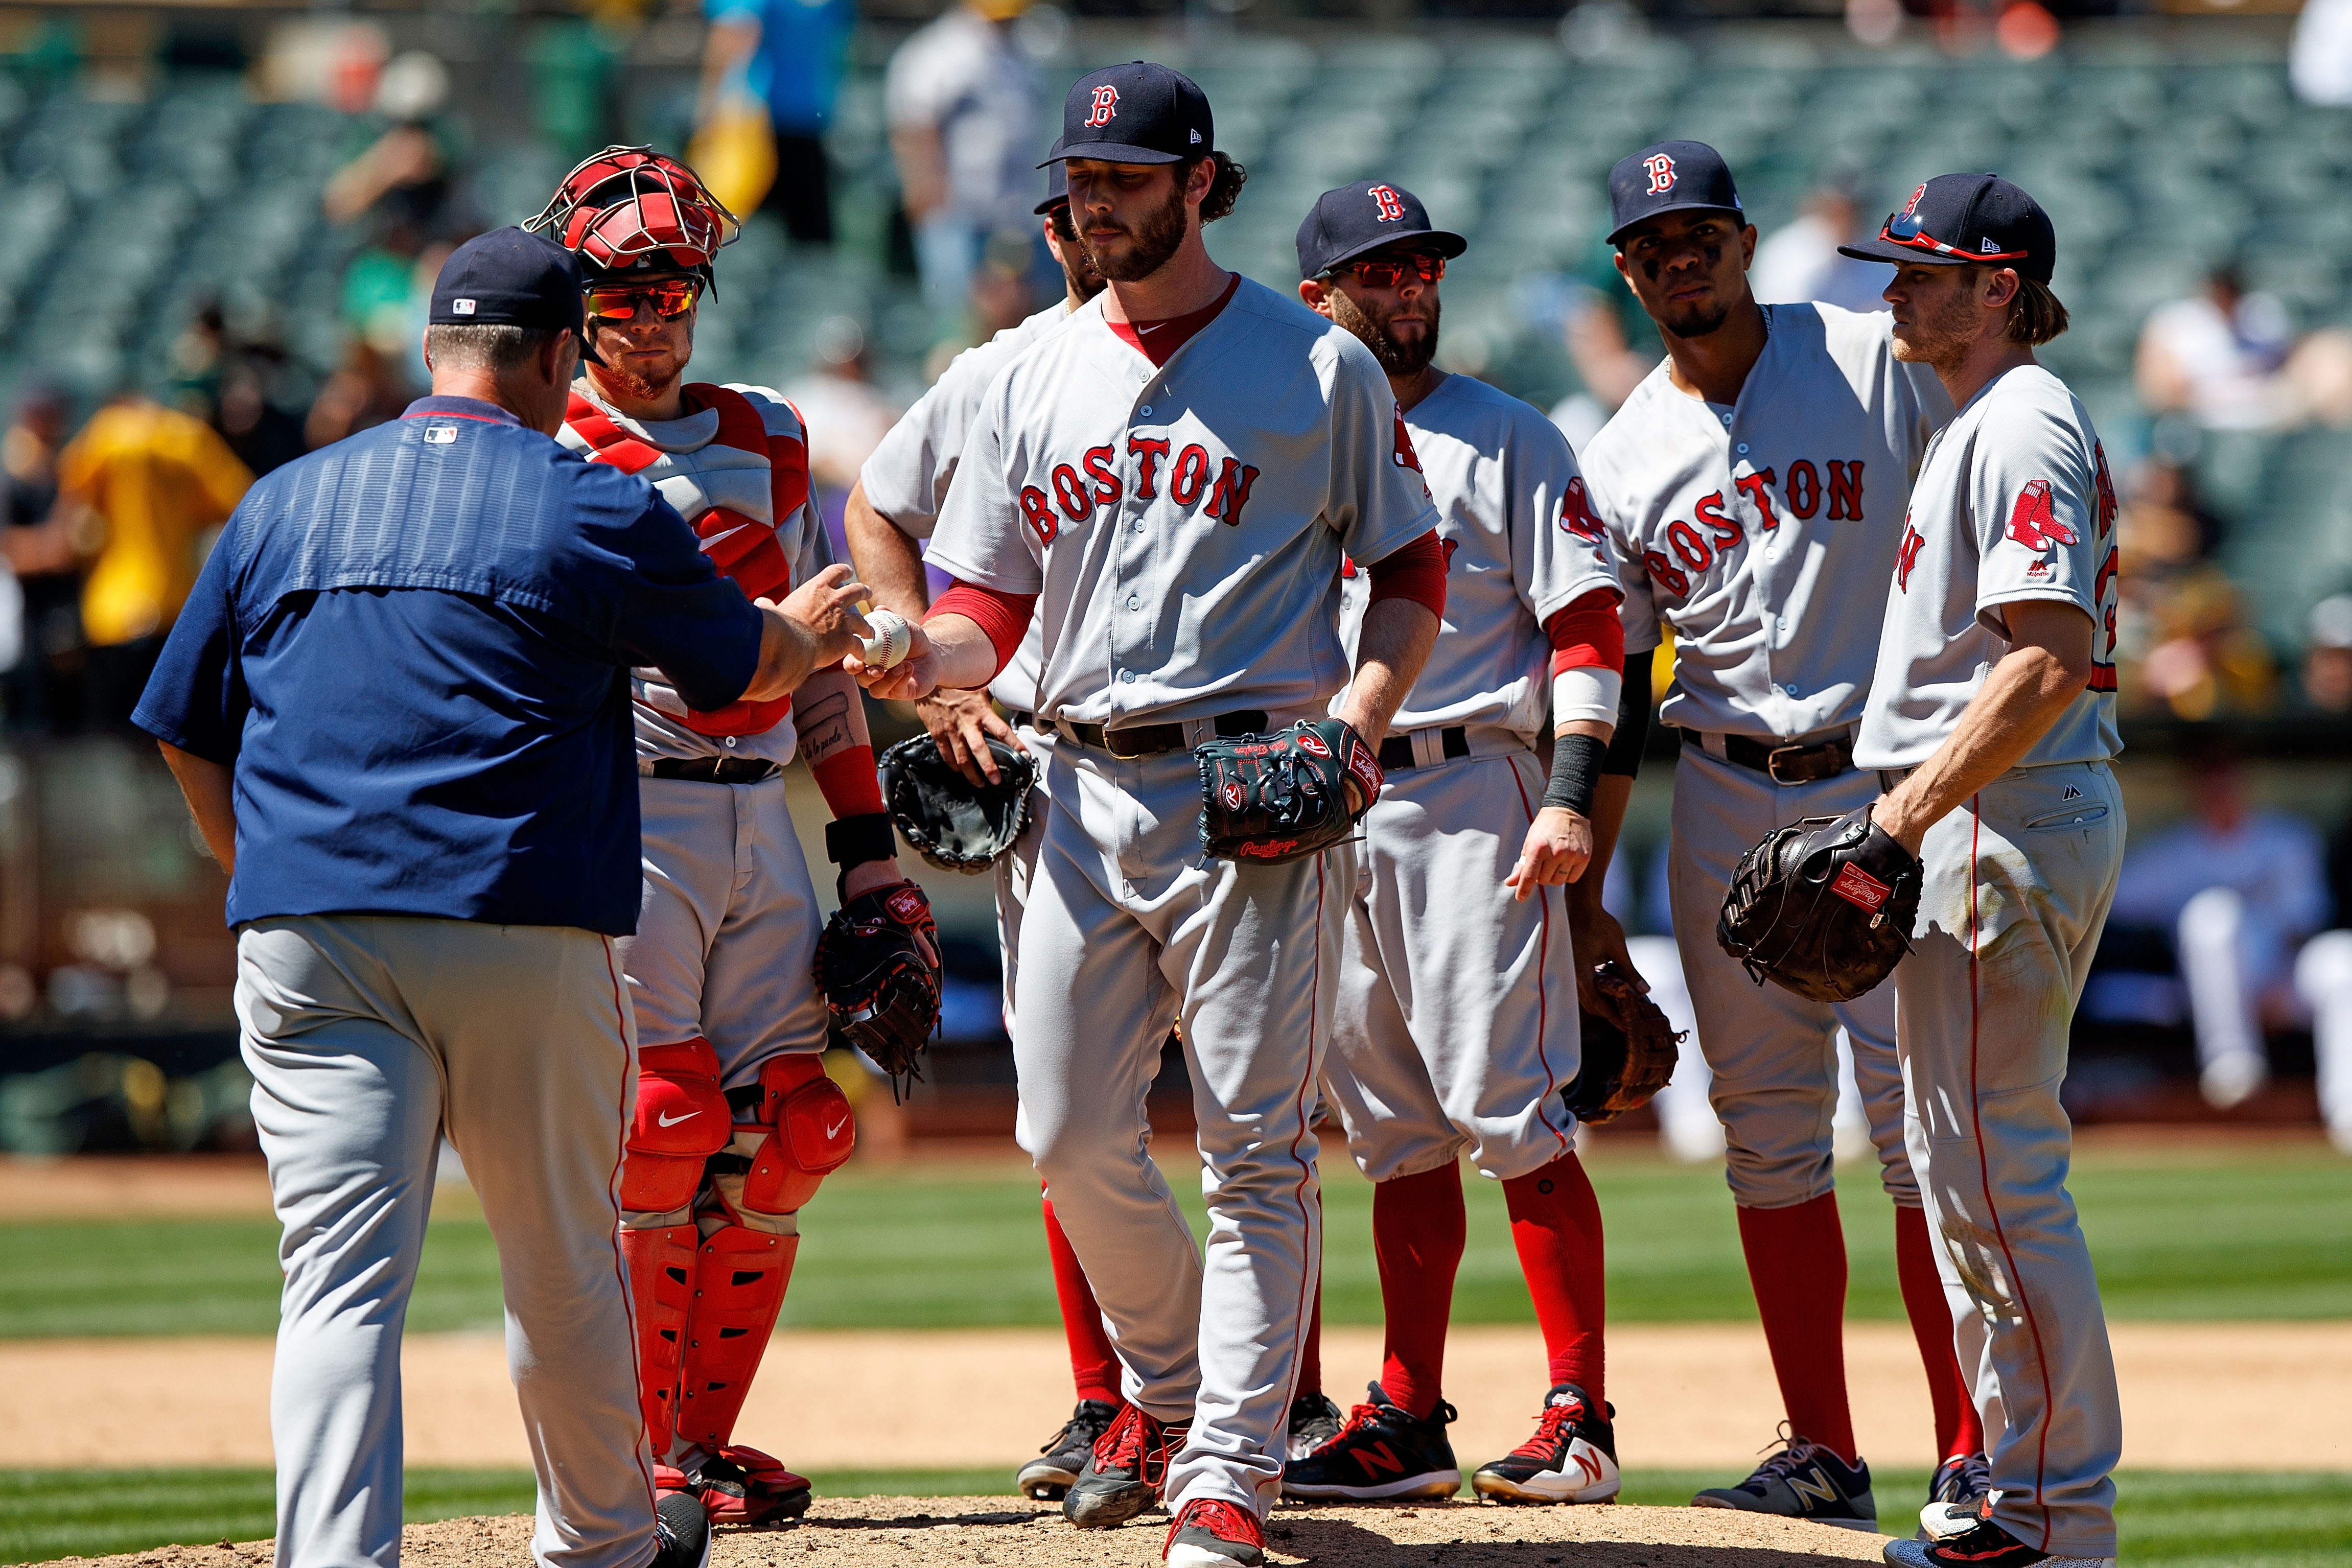 MLB Predictions: Price faces Darvish, will Red Sox upset Rangers? 7/4/17